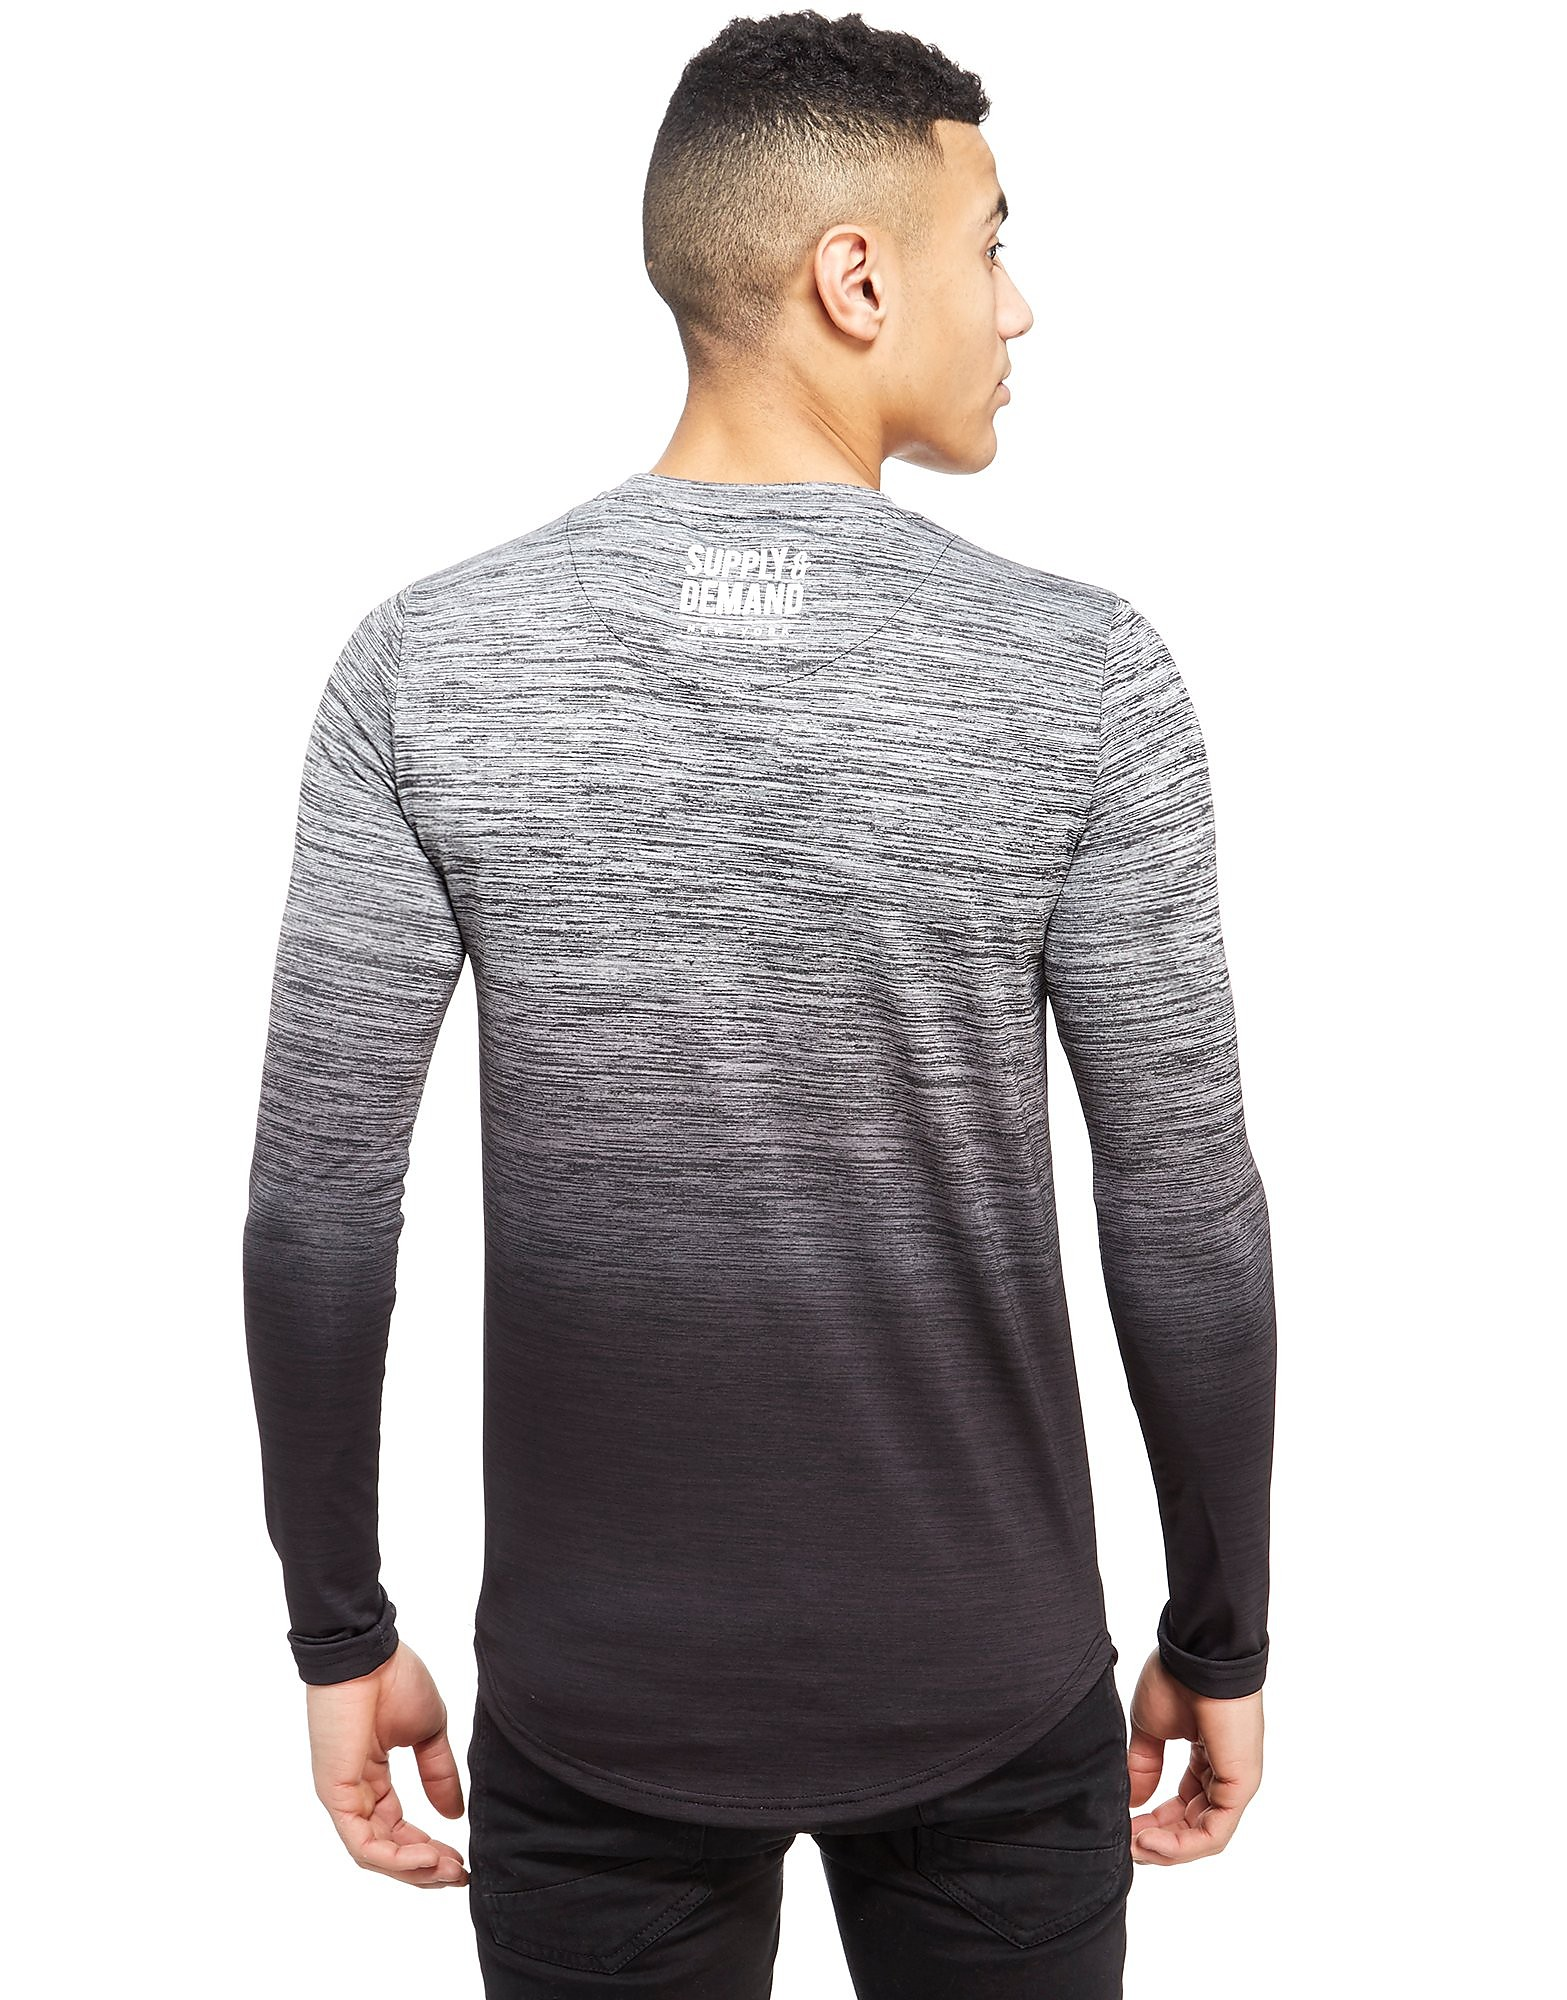 Supply & Demand Longsleeve Hendrick Fade T-Shirt